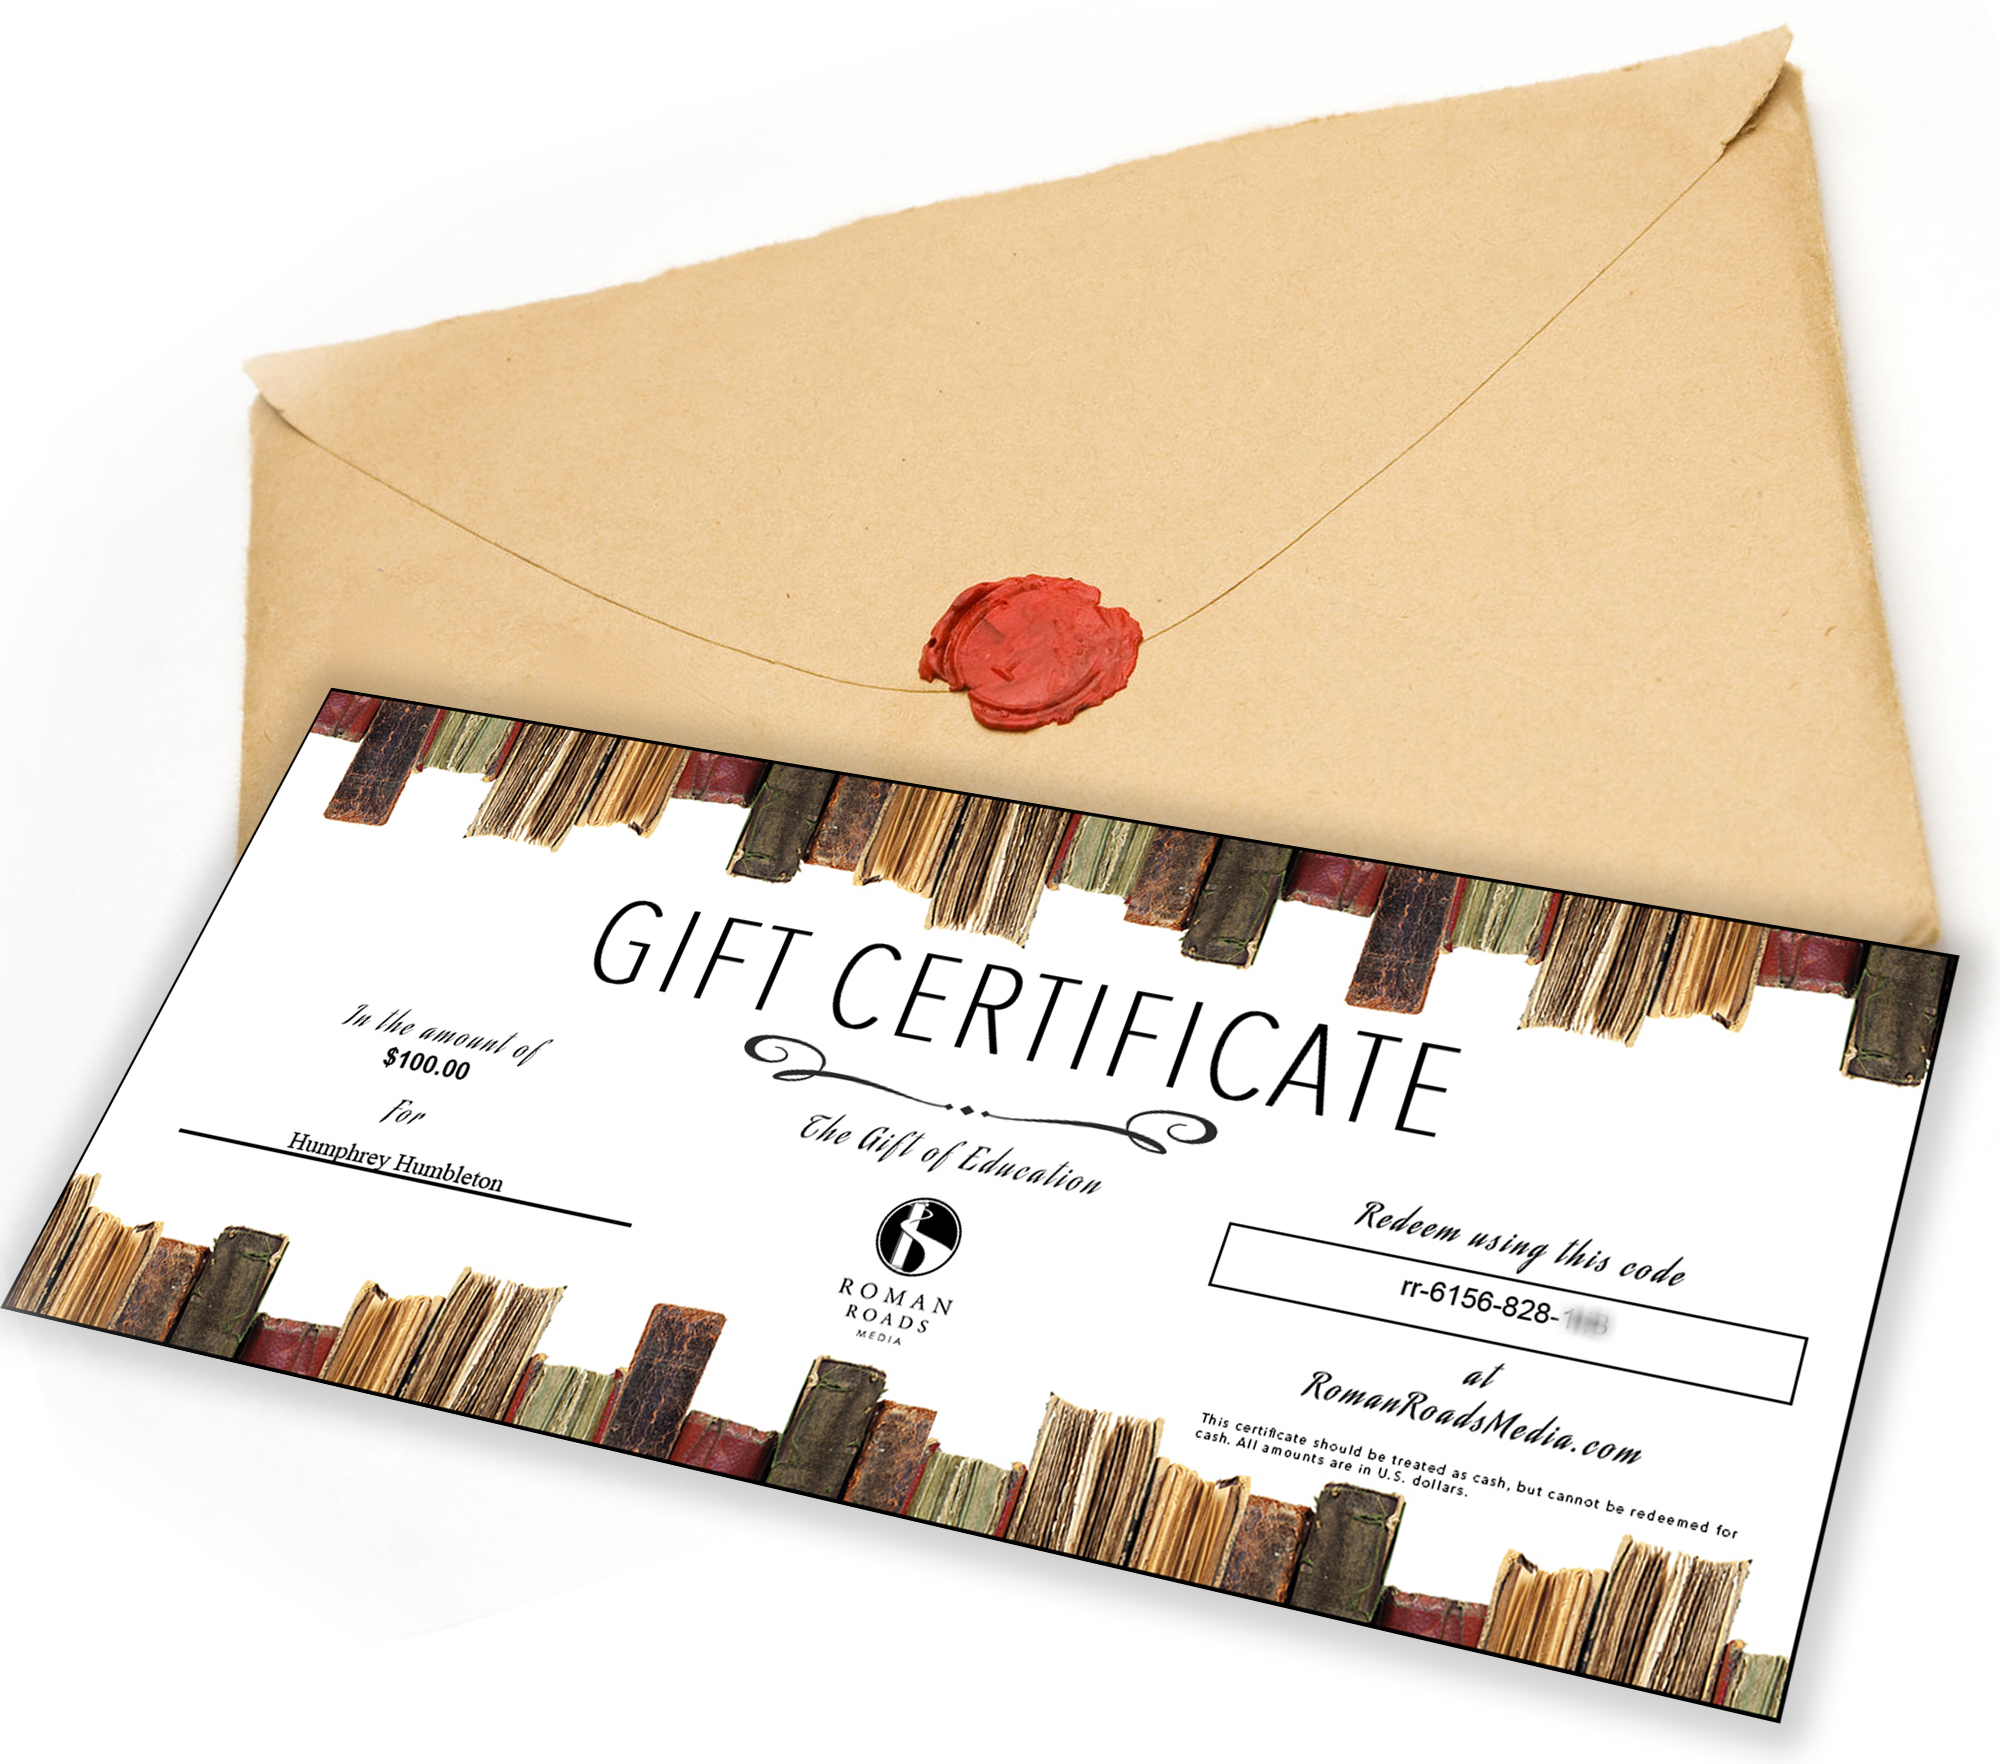 Gift Certificate Image